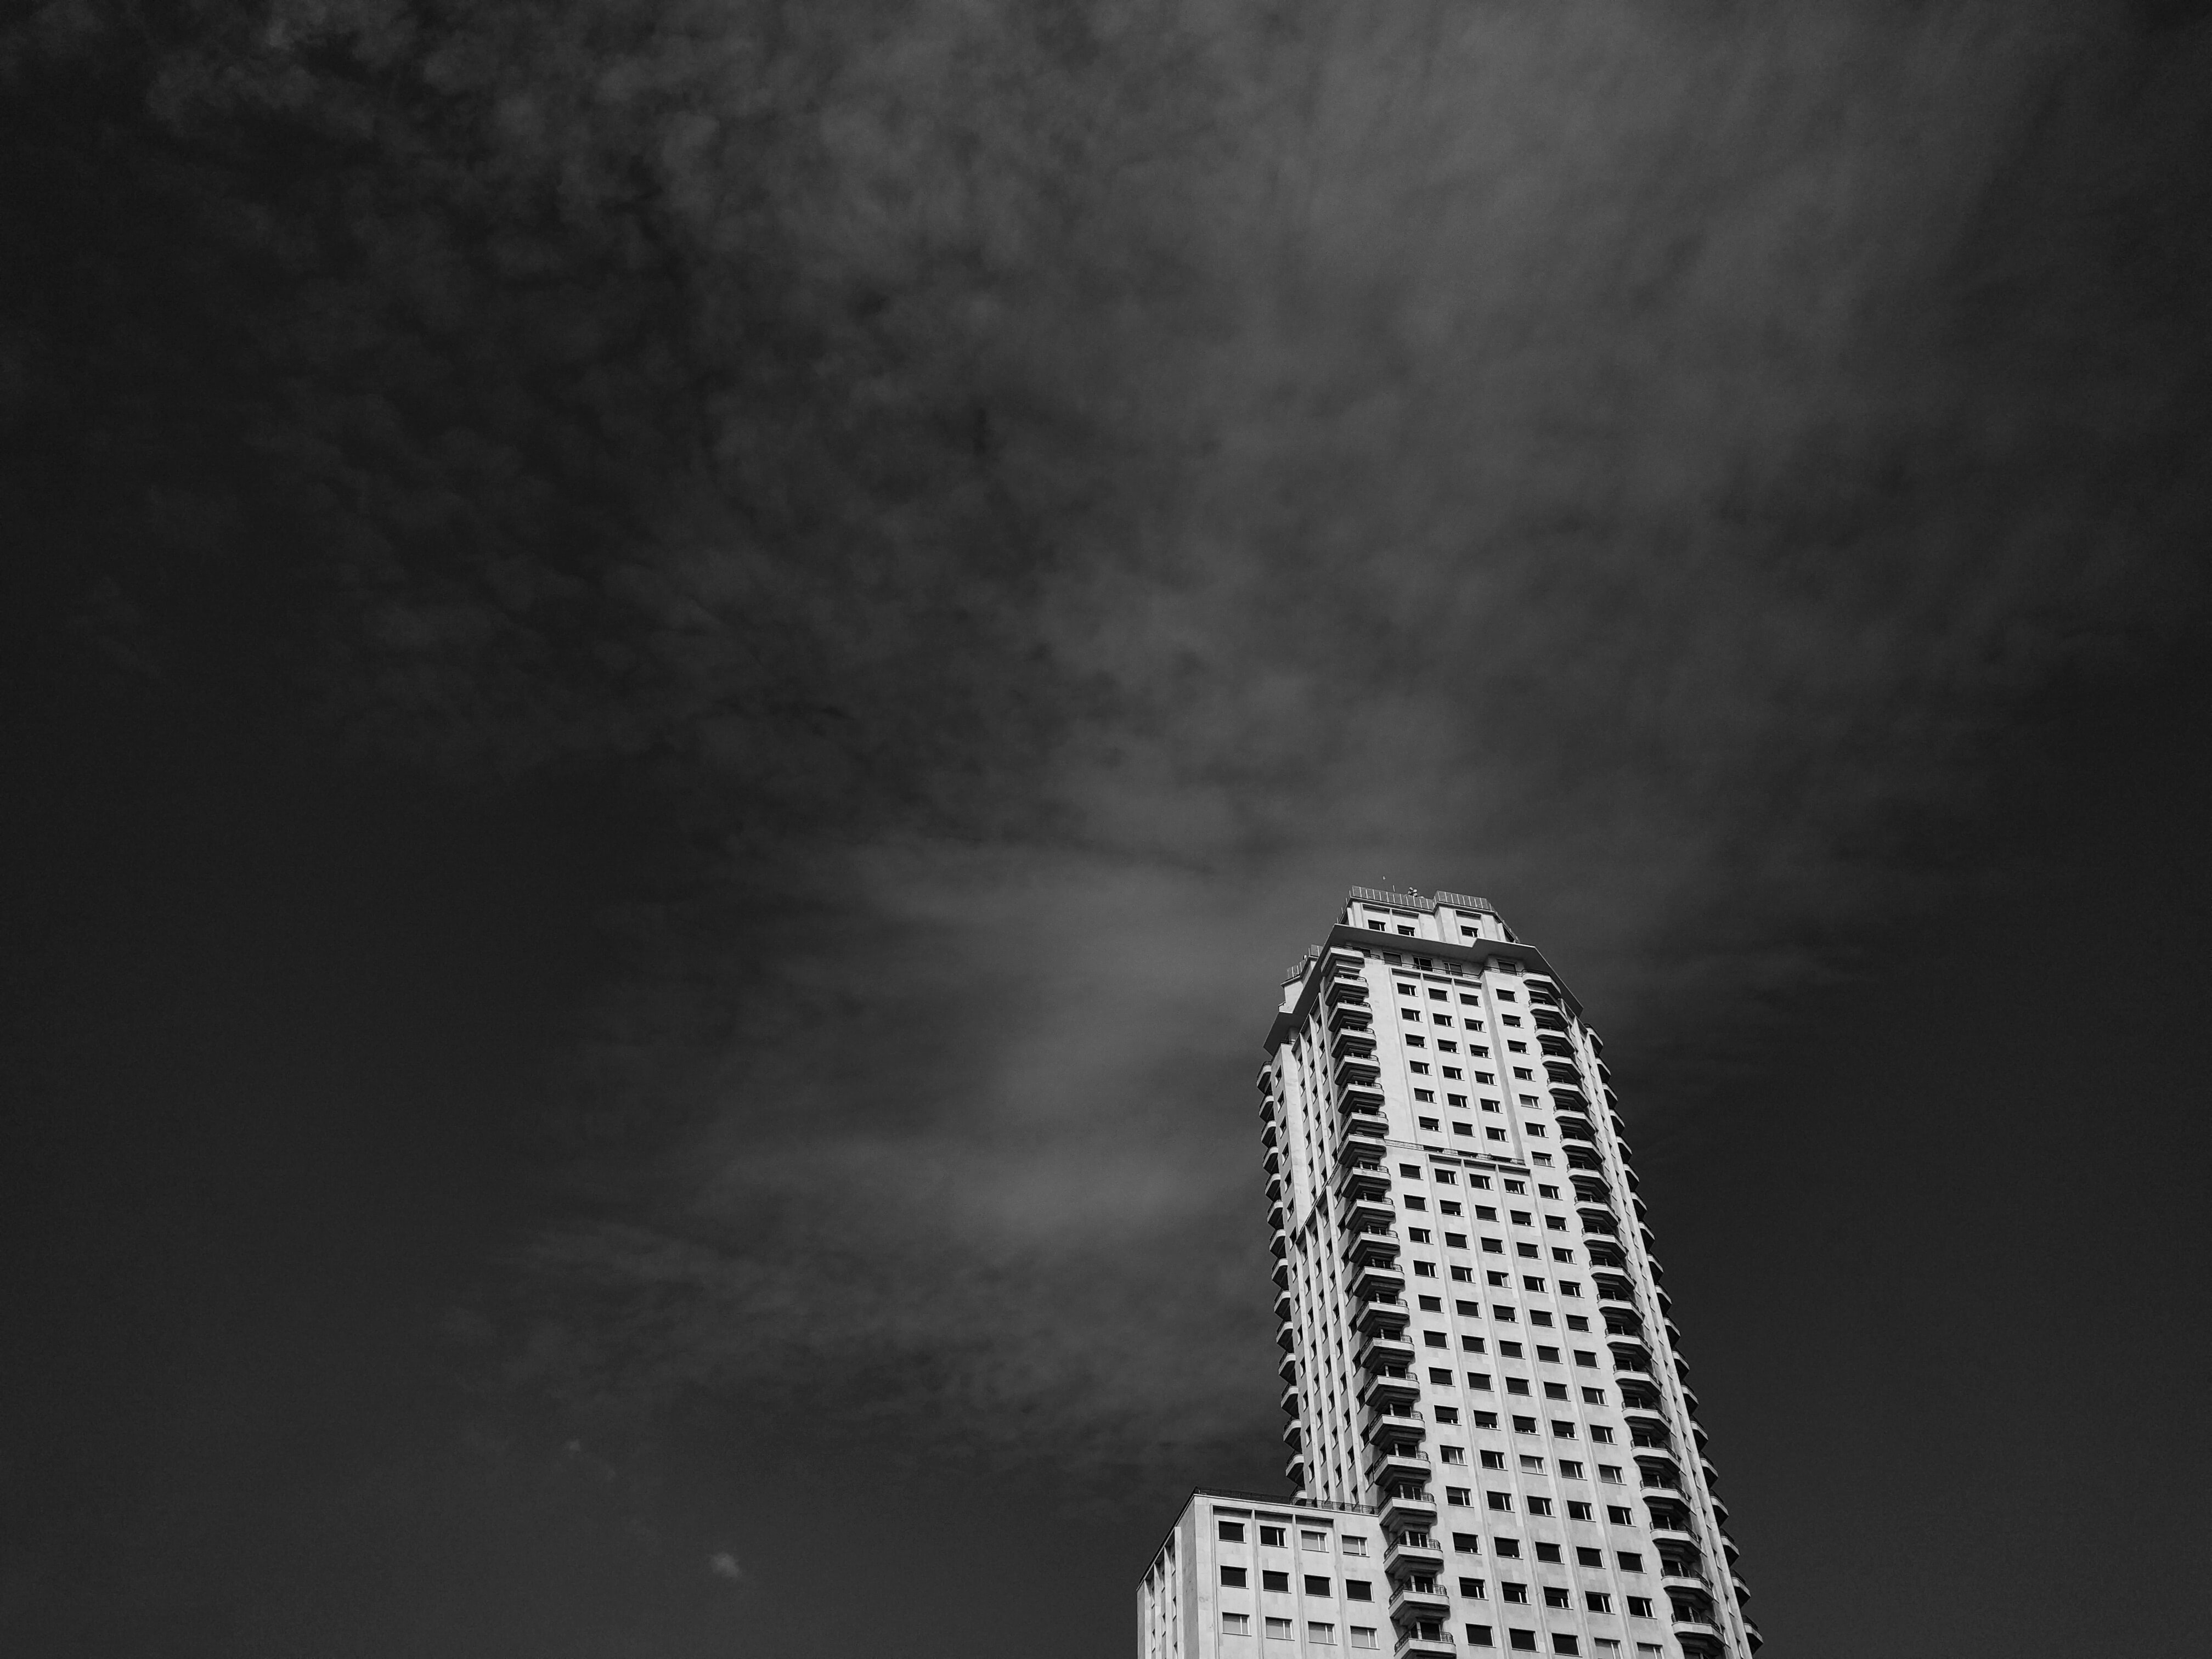 Black and white view of the Torre de Madrid with a dark sky